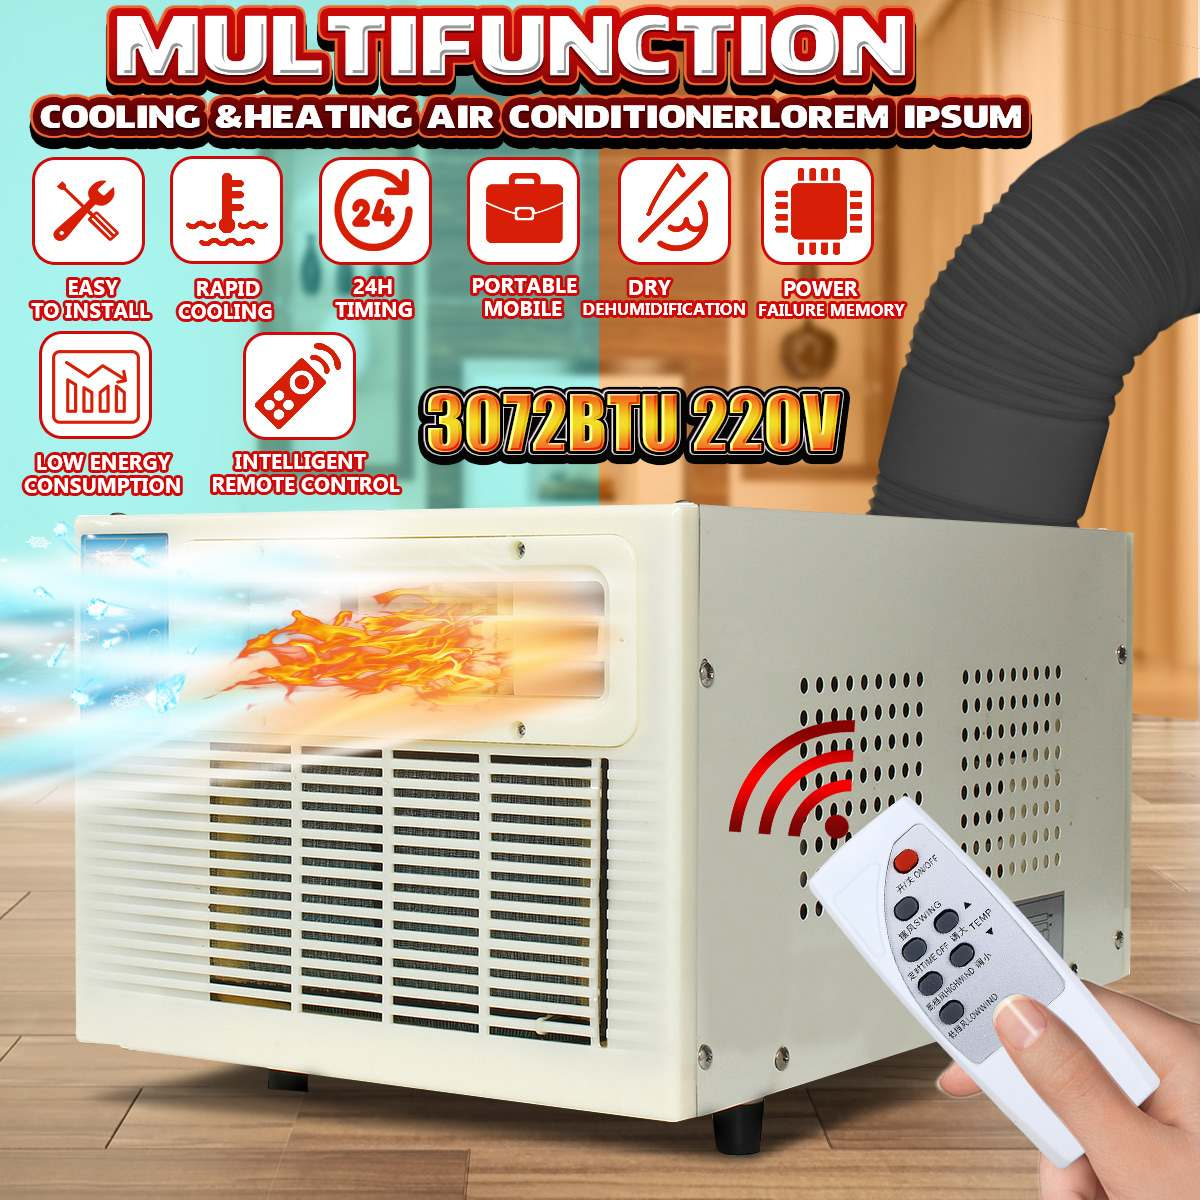 Air Conditioner 2047BTU 220V Household Portable Heater Window Air Conditioner Cooling Heating Cold/Heat Dual Use Dehumidifier